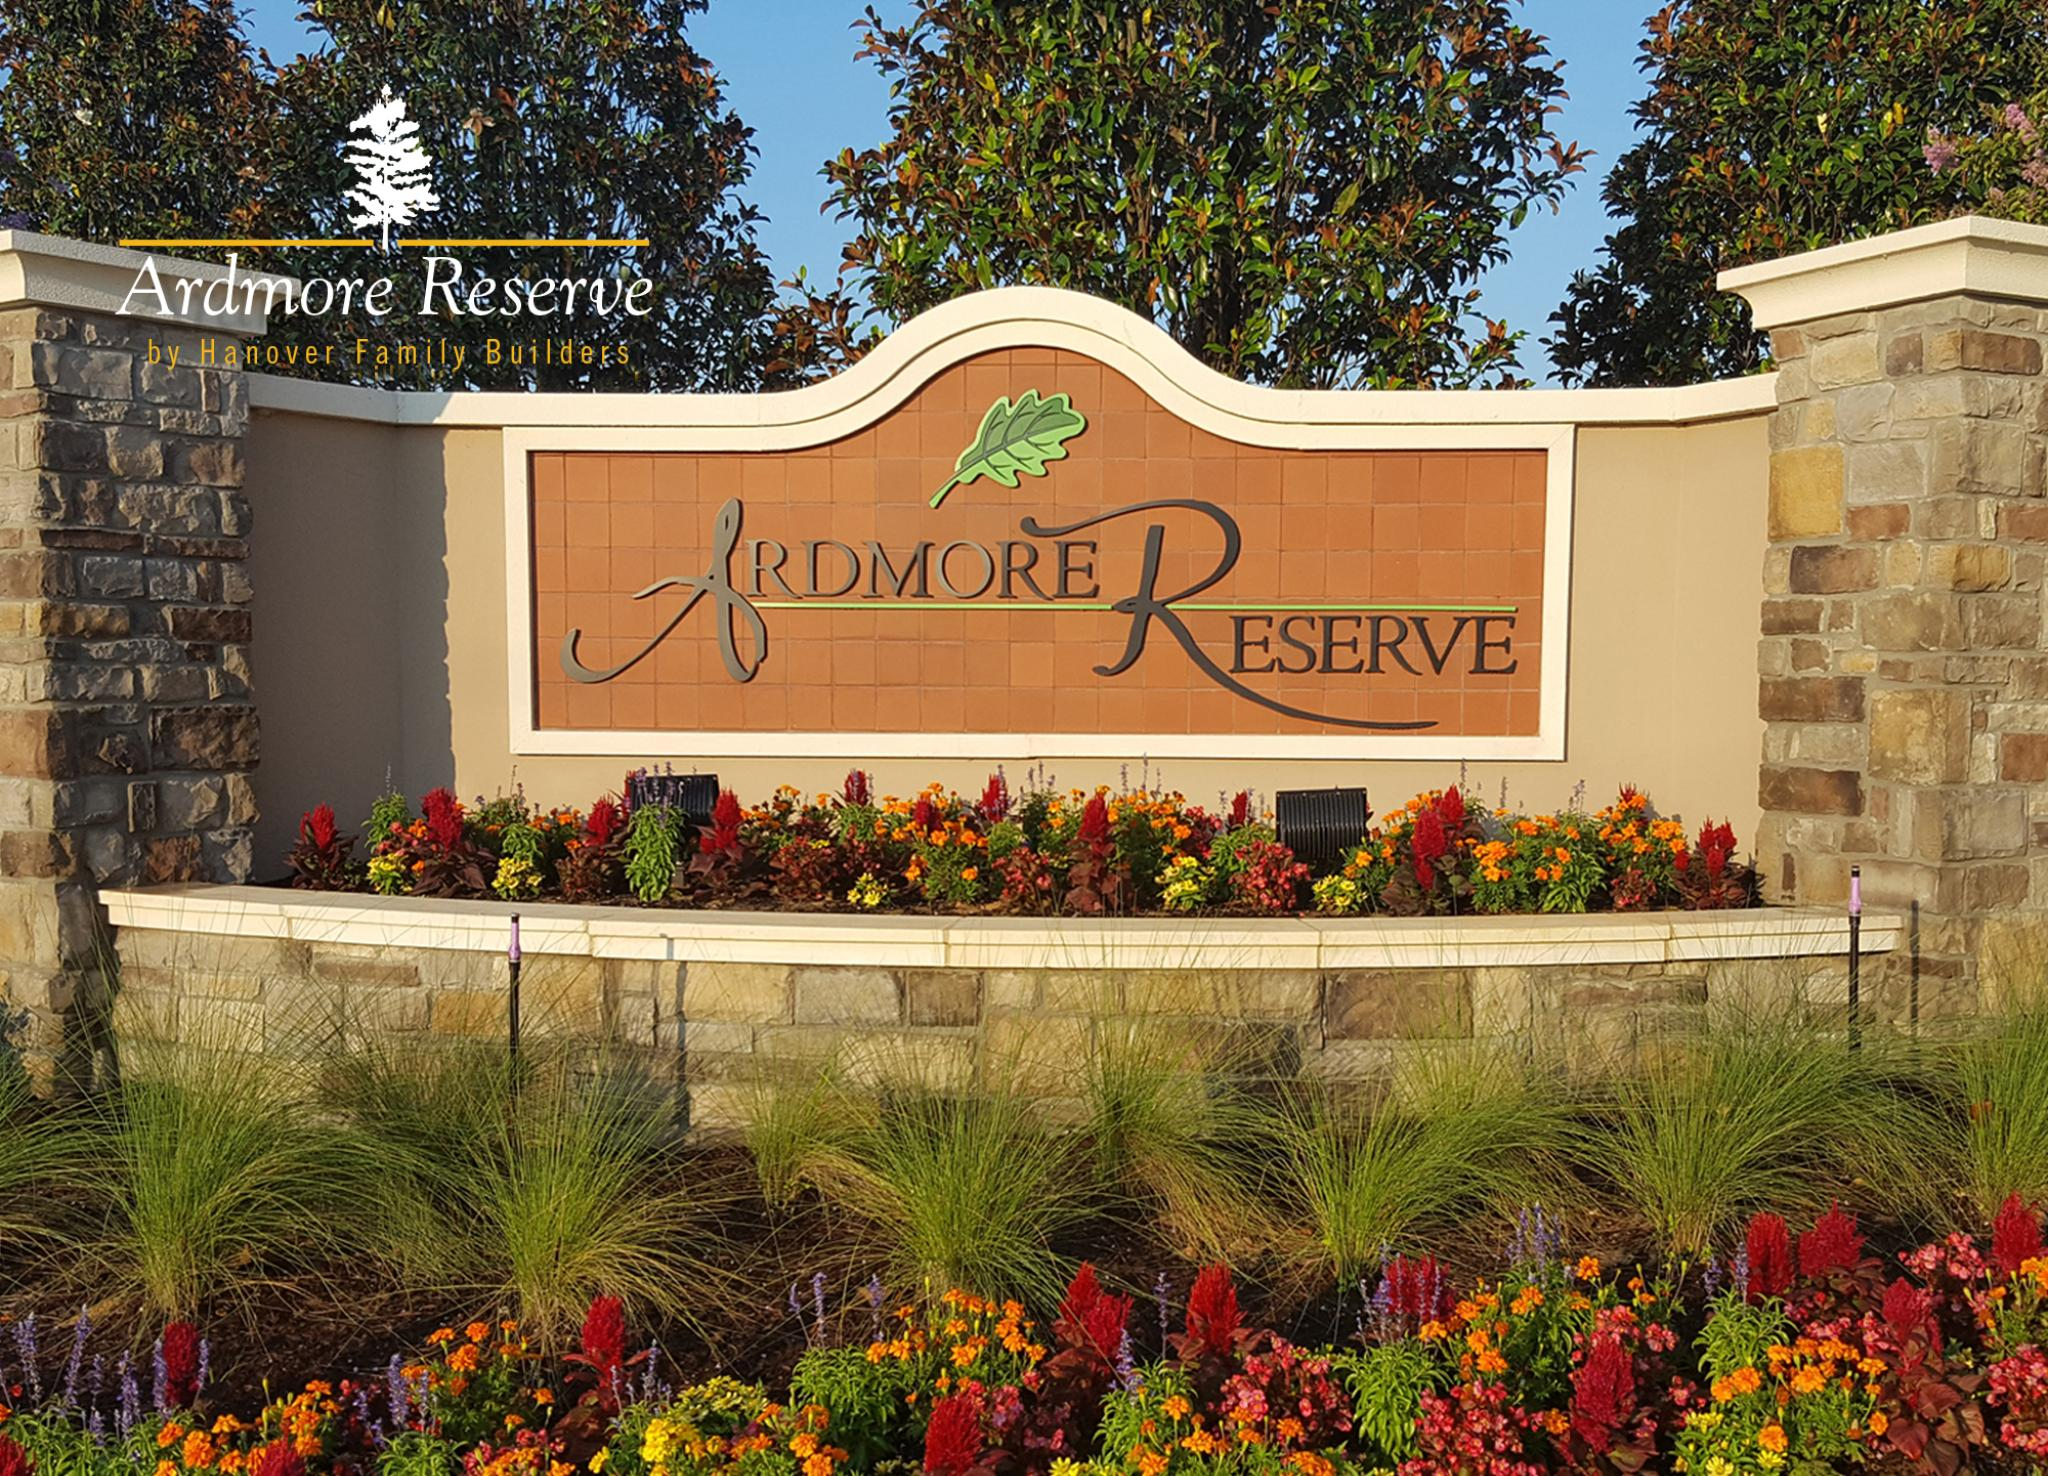 Ardmore Reserve | New Home Community | Hanover Family Builders